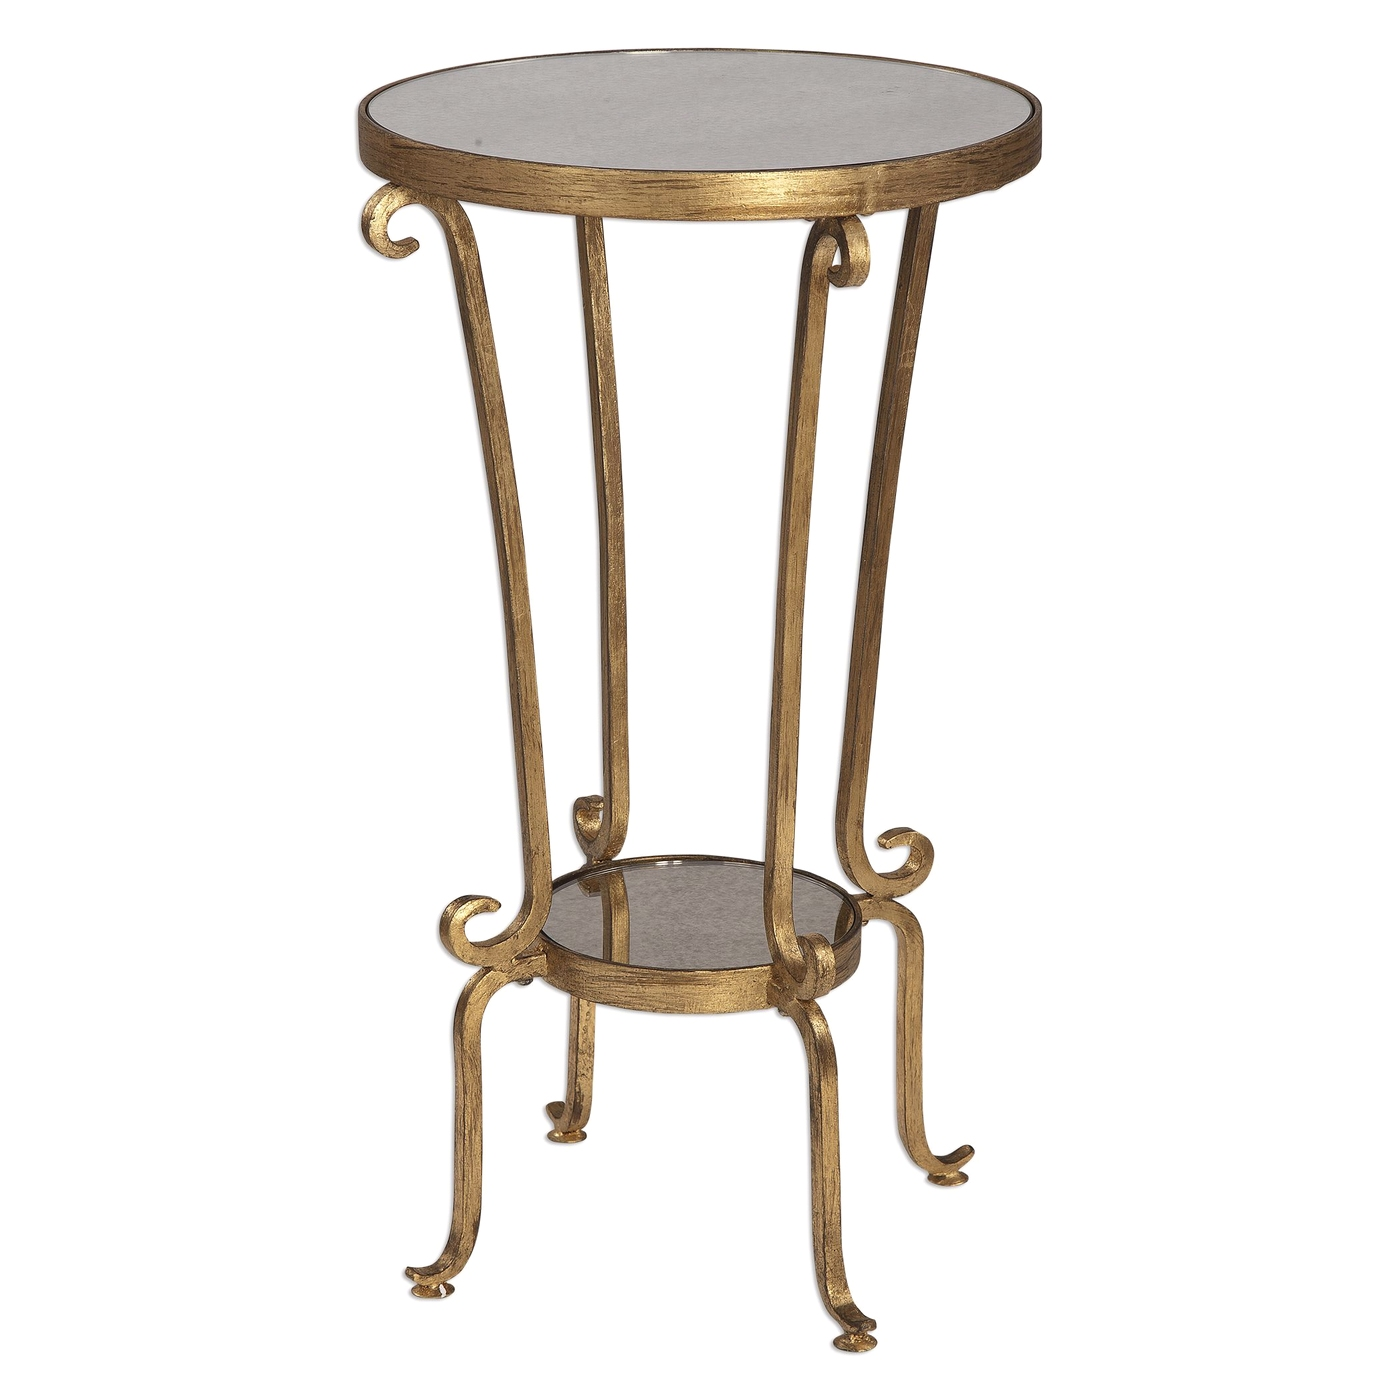 Vevina French Deco Curled Iron Accent Table In Antiqued